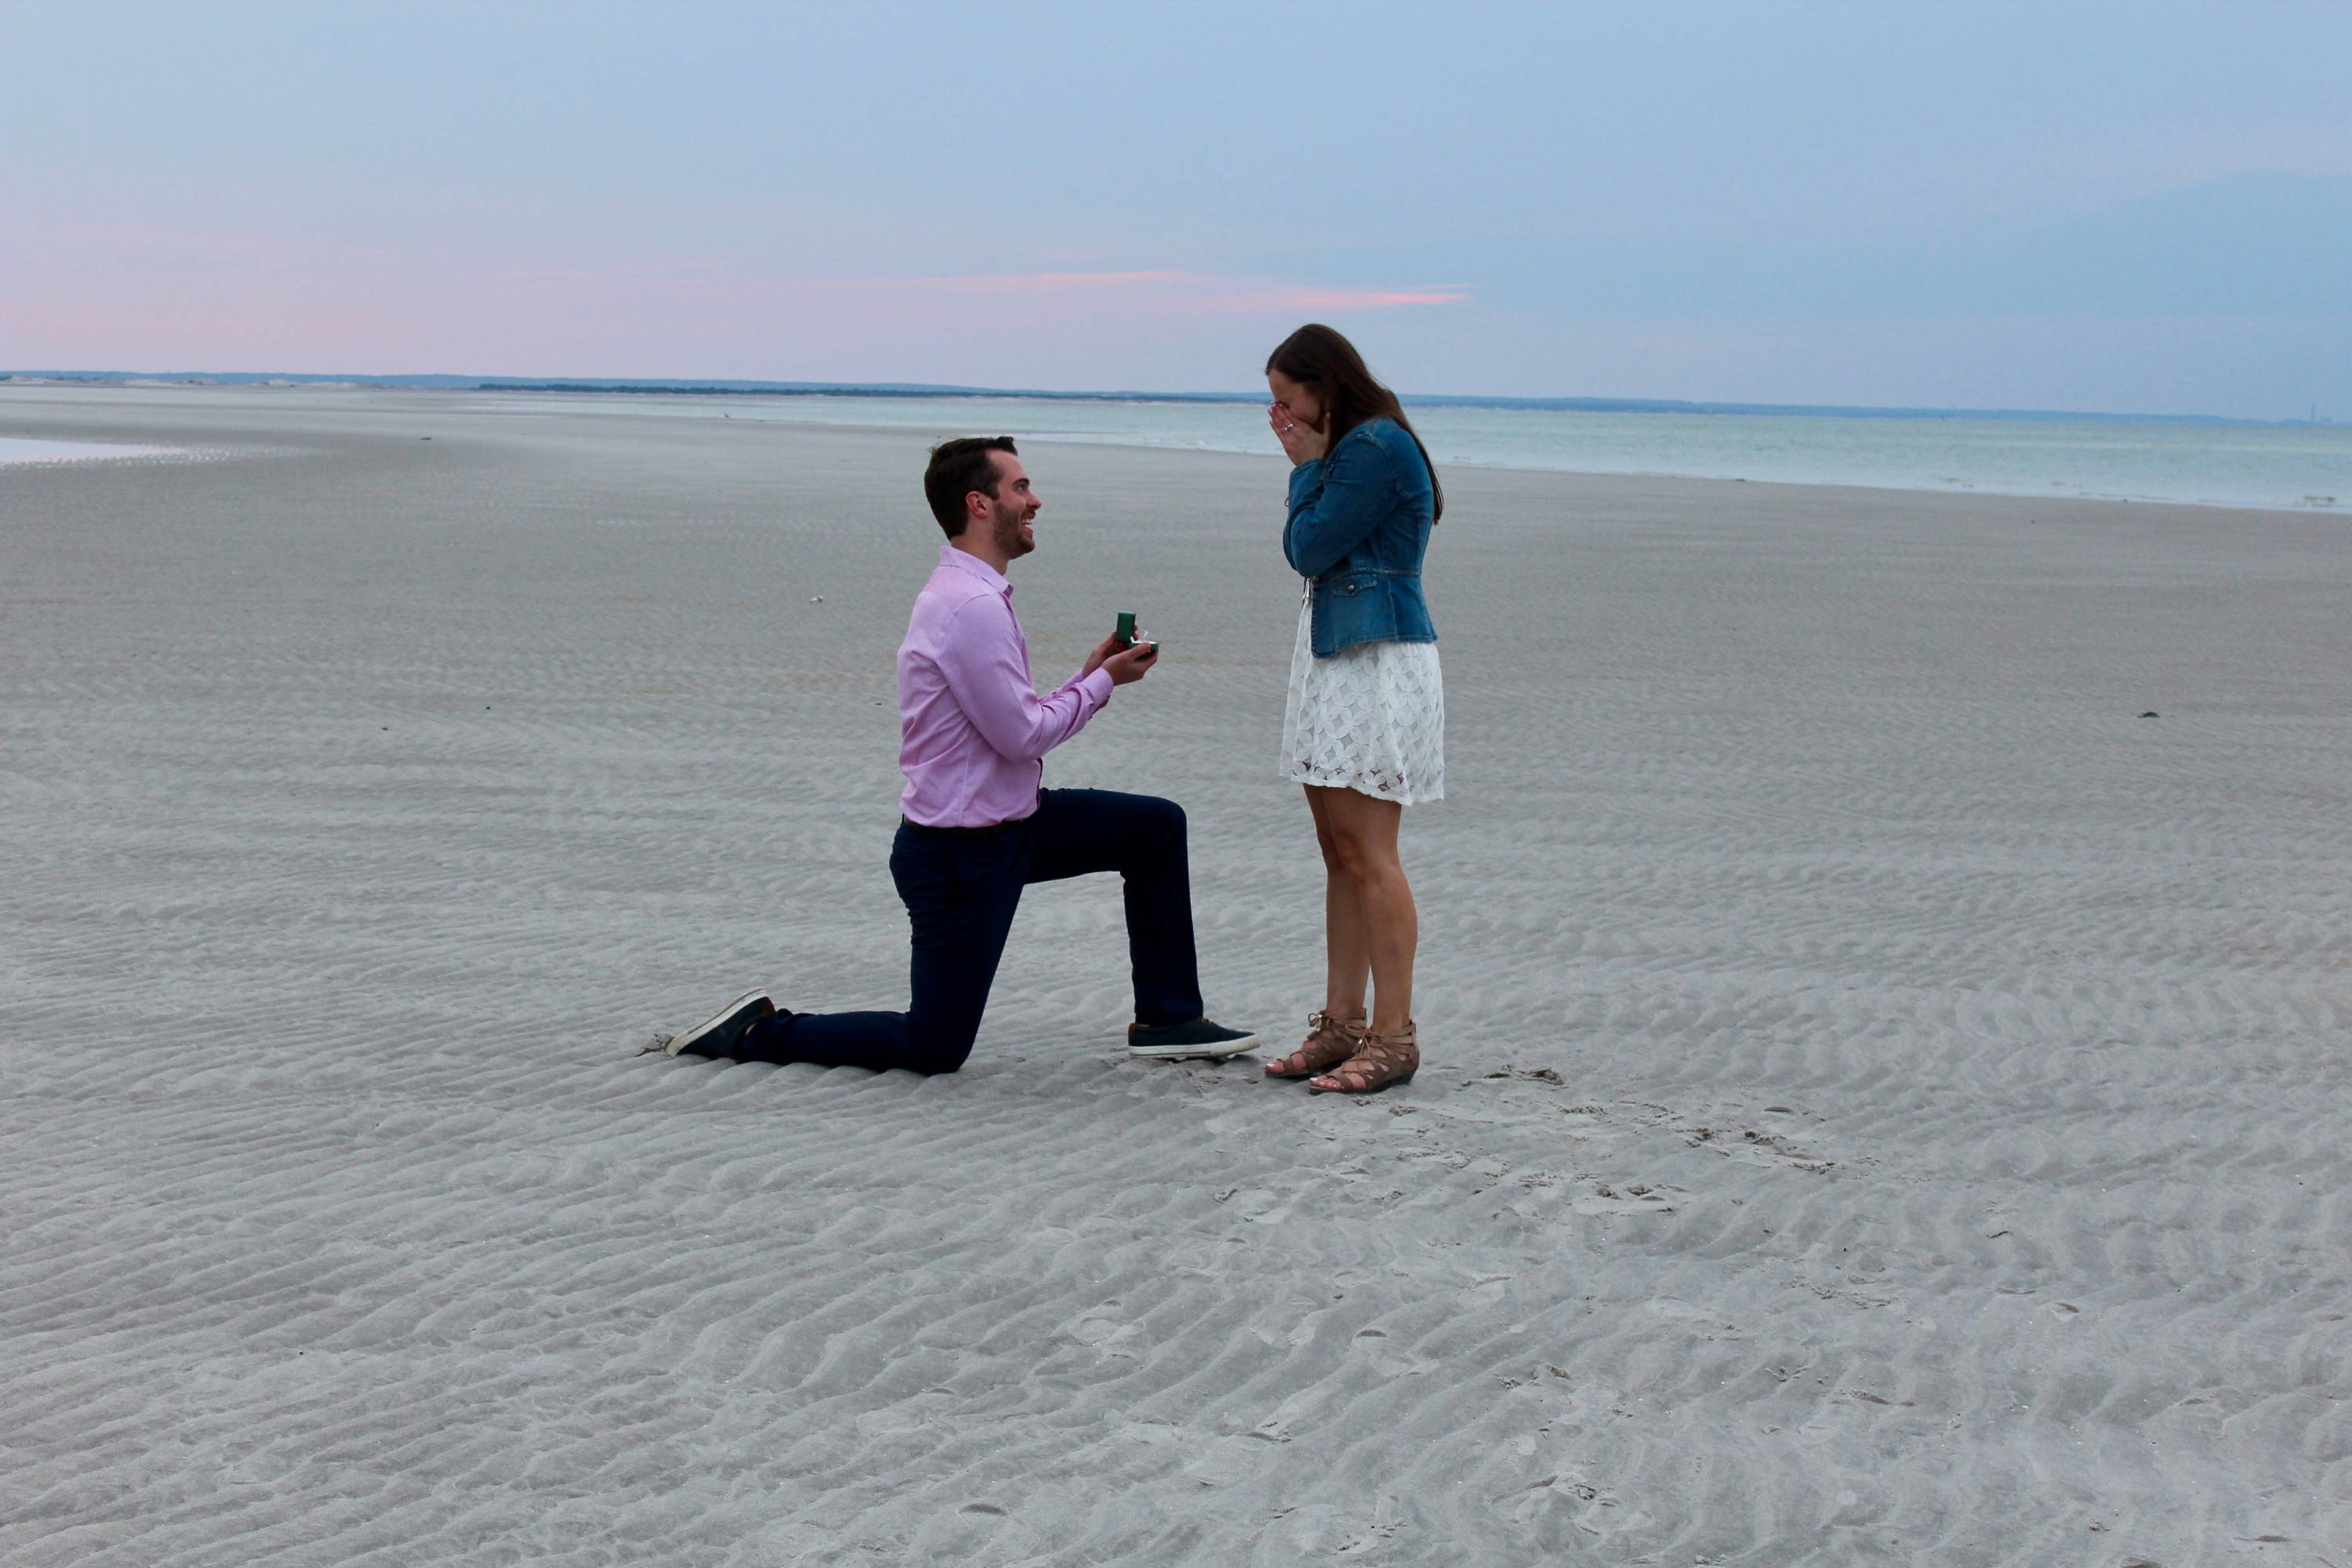 Luke Proposing to Taylor on the Beach with an Engagement Ring from Henne Jewelers